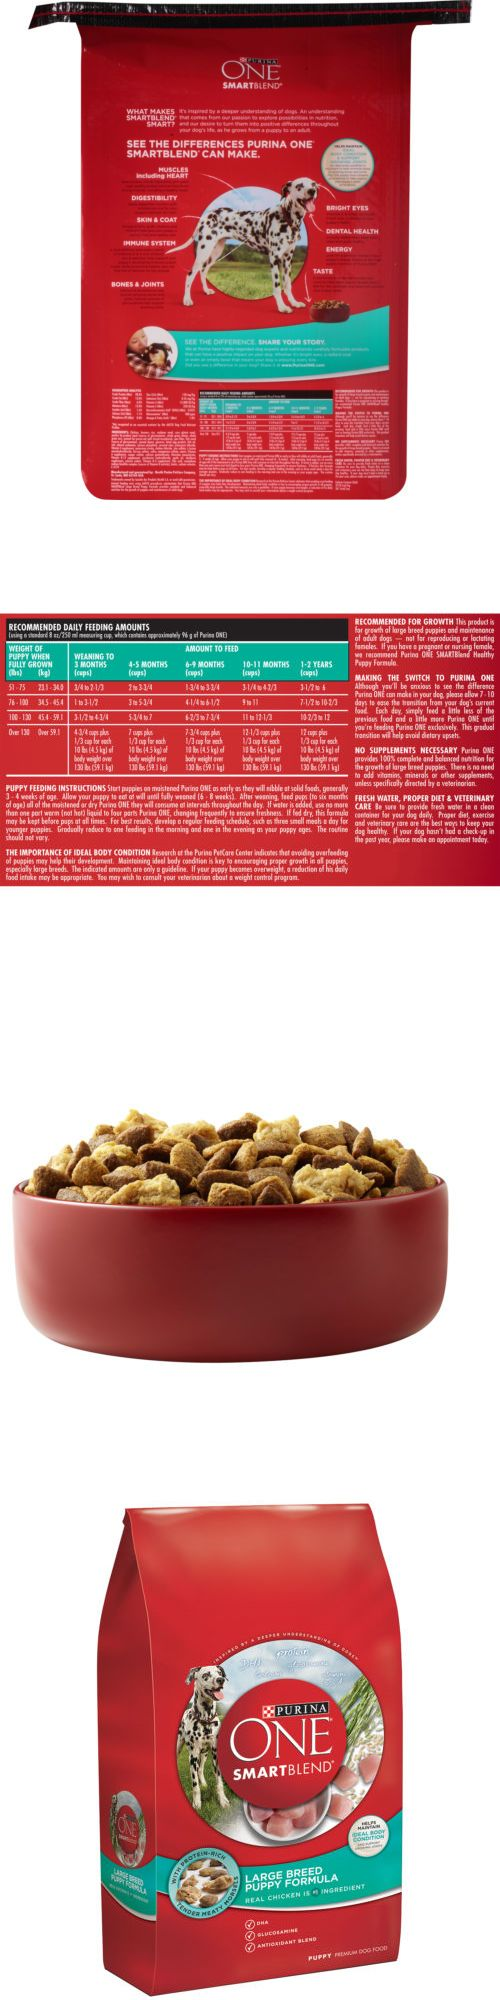 Dog Food 66780: Purina One Smartblend Large Breed Puppy Formula Puppy Premium Dog Food 16.5 Lb. -> BUY IT NOW ONLY: $33.95 on eBay!